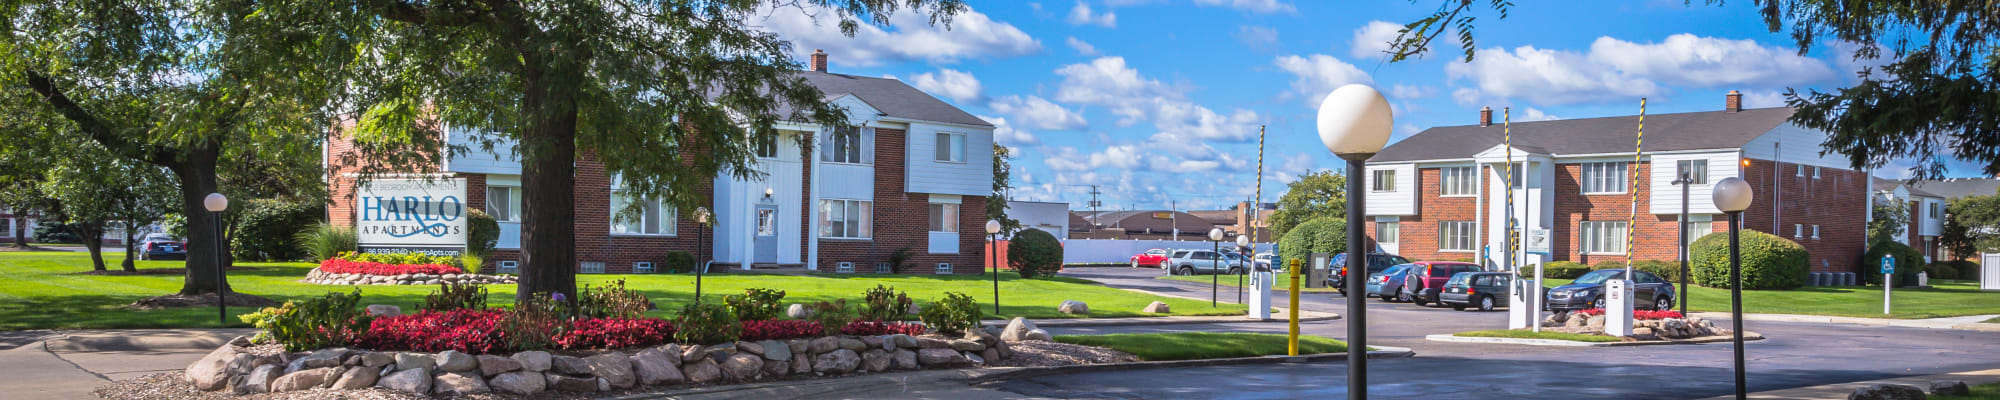 Join Our Team at Harlo Apartments in Warren, Michigan